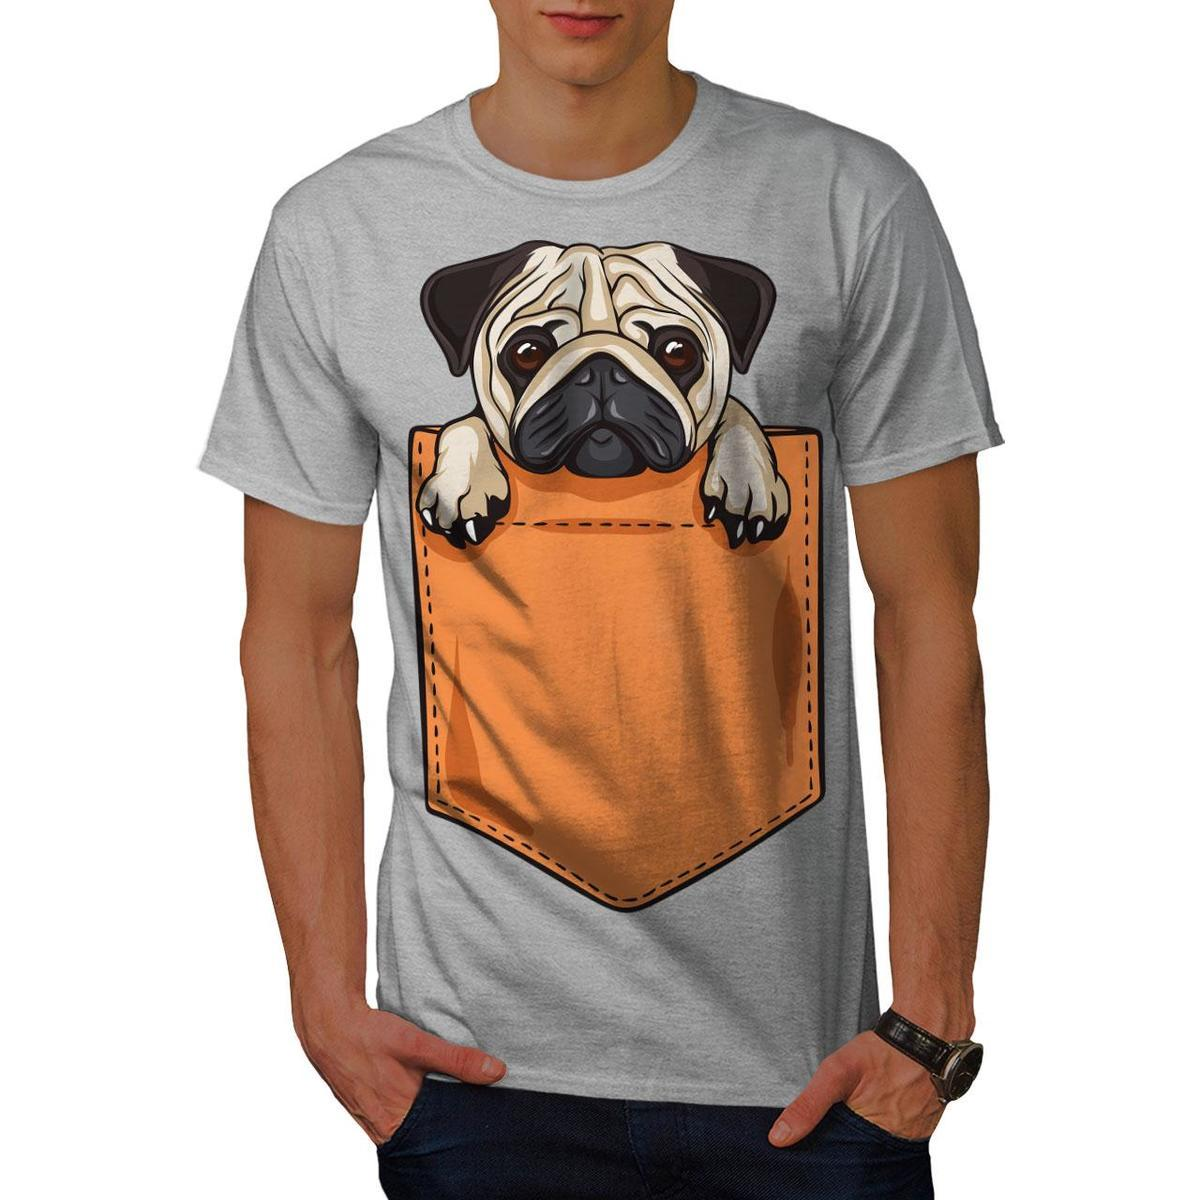 18cc2198 Wellcoda Pug Puppy In Pocket Mens T Shirt, Cute Graphic Design Printed Tee  Design Your Own T Shirts Womens Shirt From Amesion56, $12.08| DHgate.Com